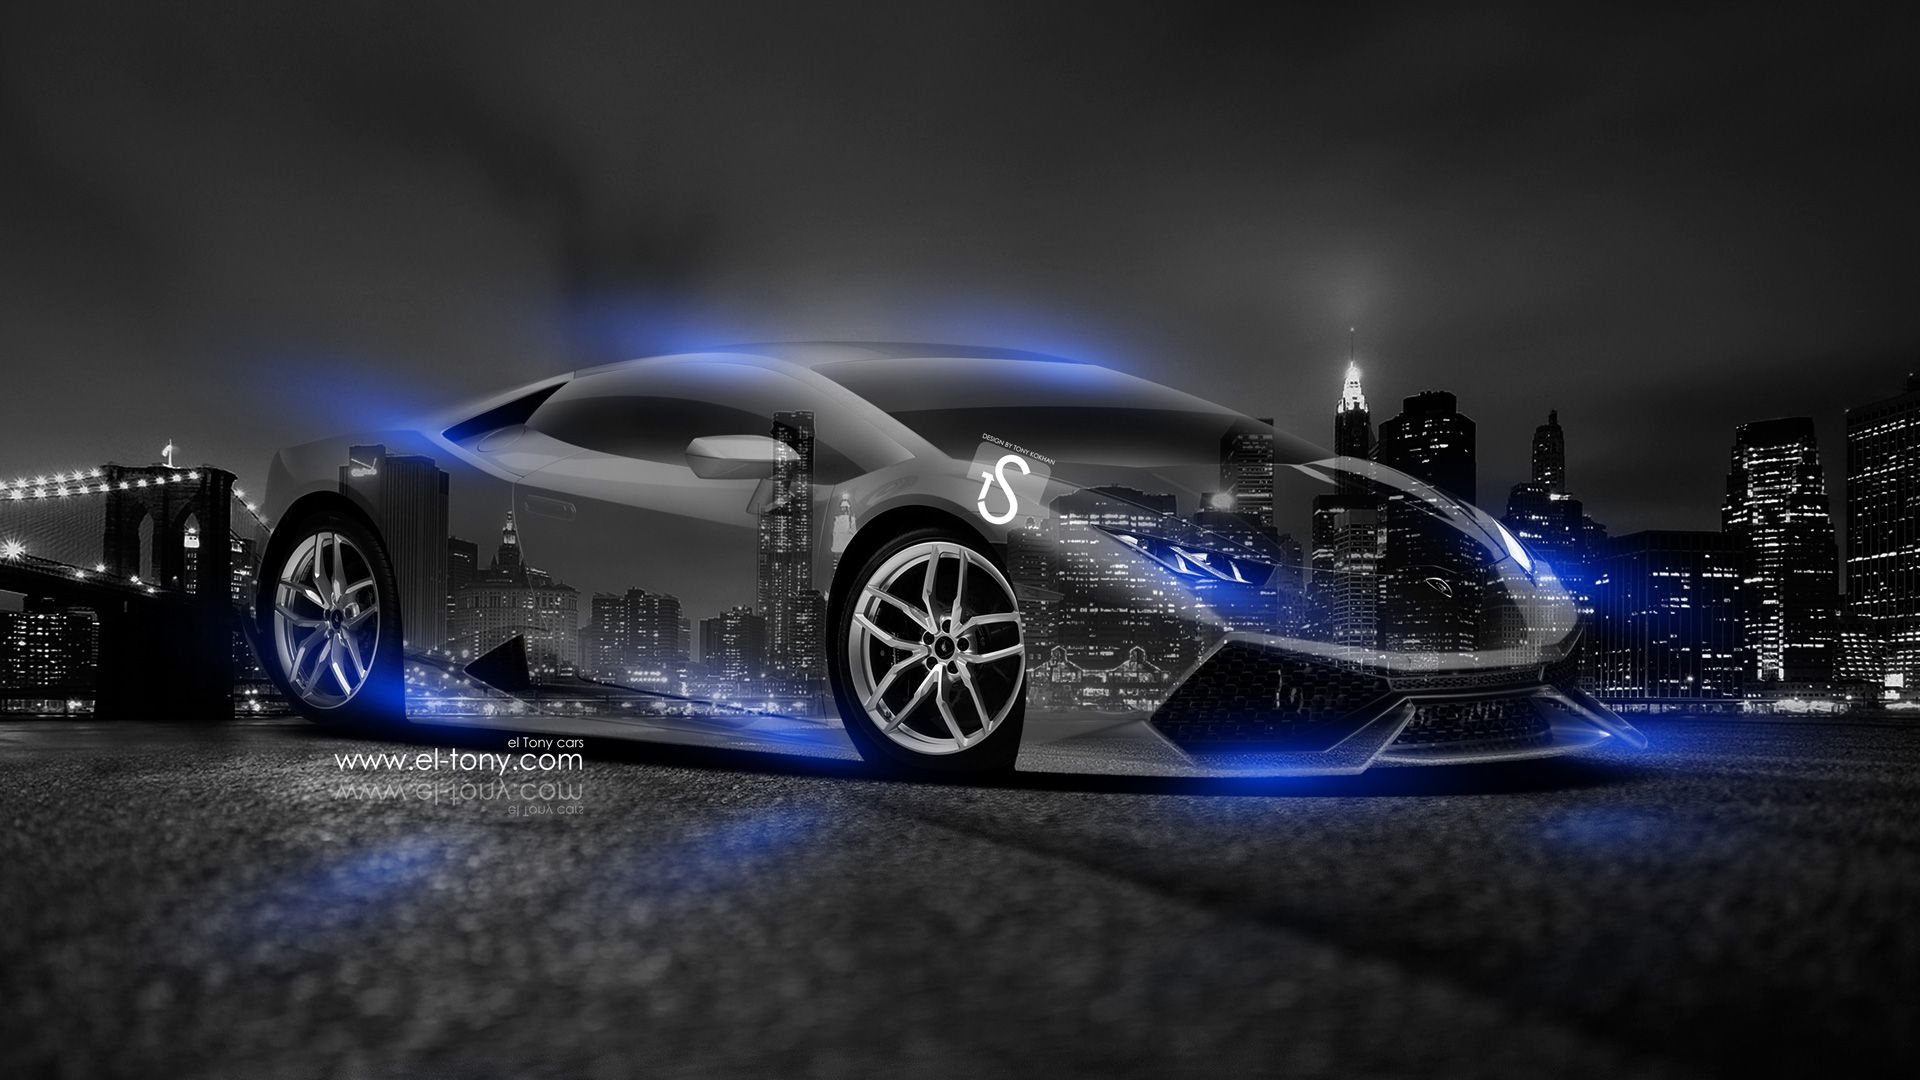 Beautiful Black Lamborghini With Neon Blue Lights | Lamborghini Huracan Crystal City  Car 2014 Blue Neon Design By Tony .